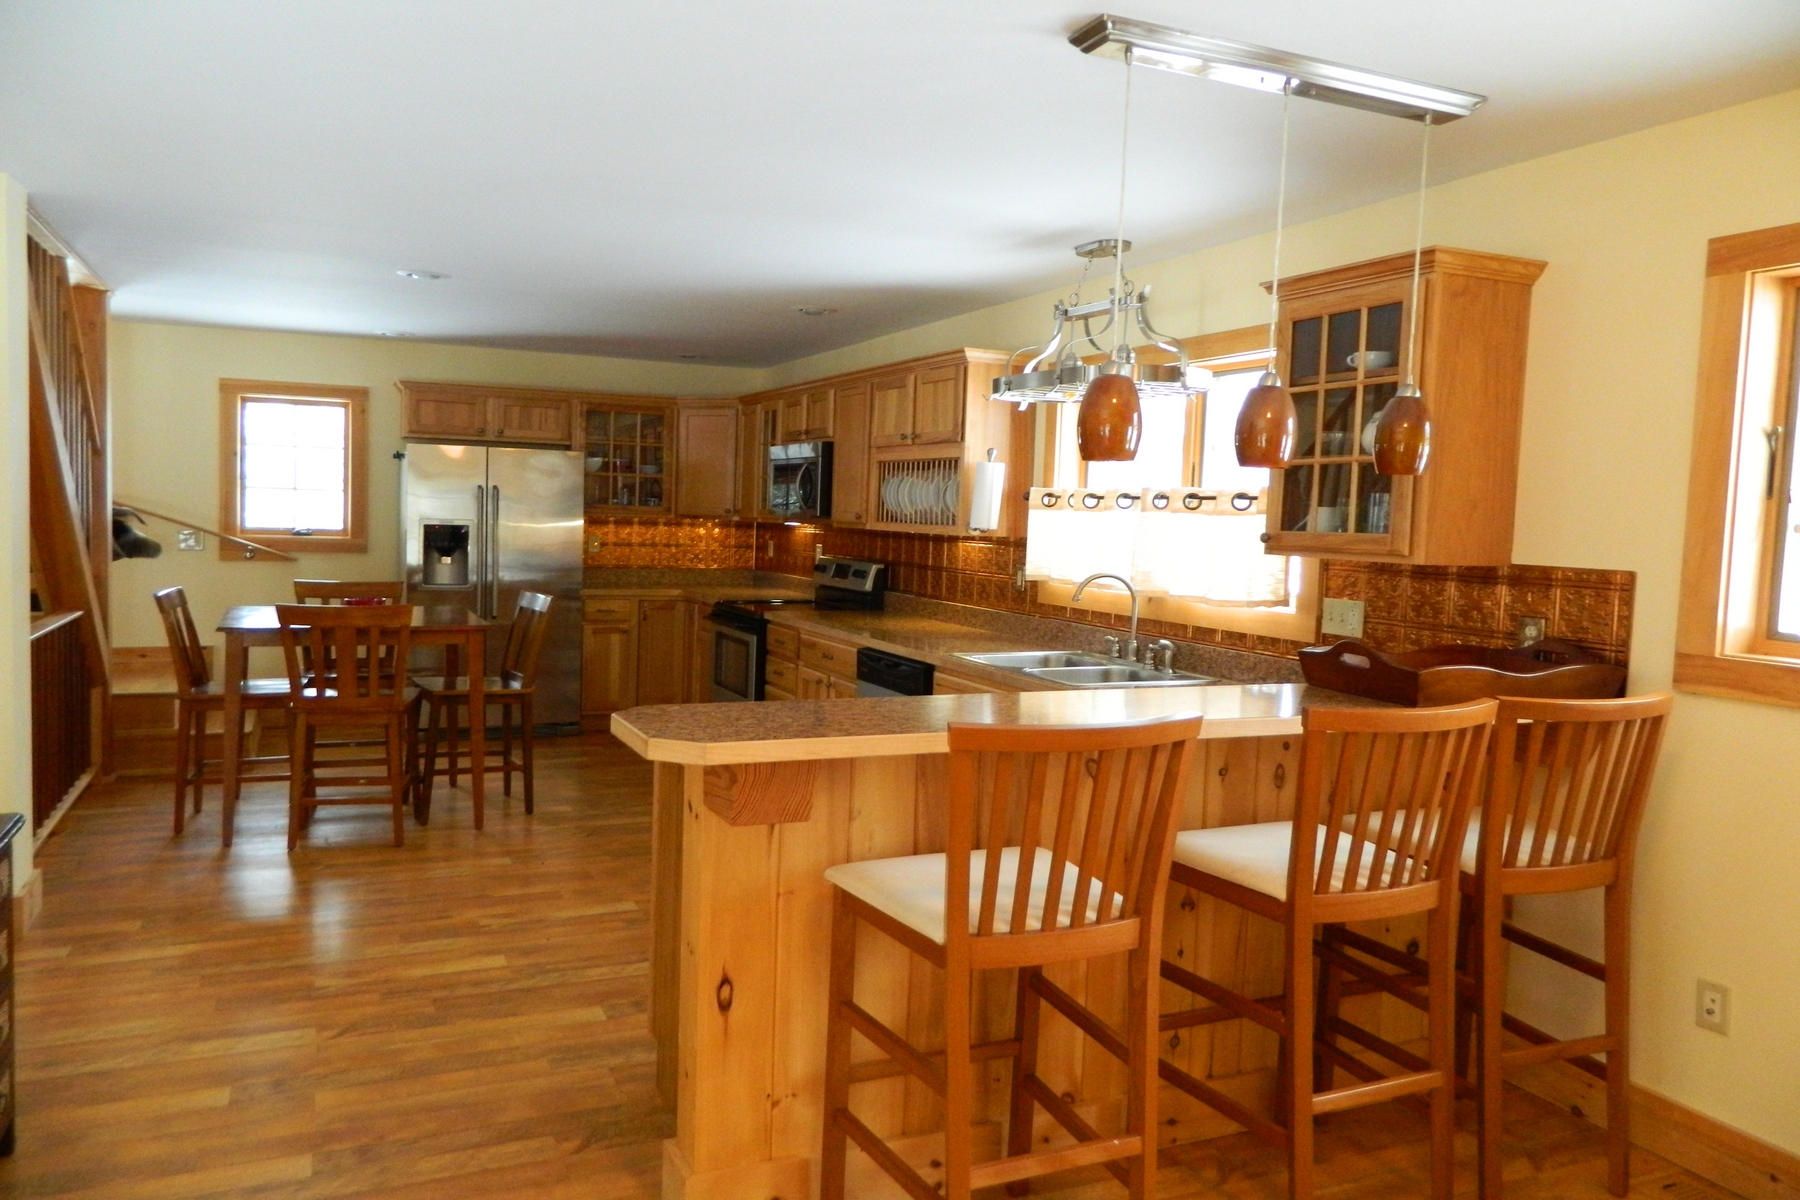 Additional photo for property listing at New Adirondack Chalet 1205  Harrisburg Rd Stony Creek, Nueva York 12878 Estados Unidos